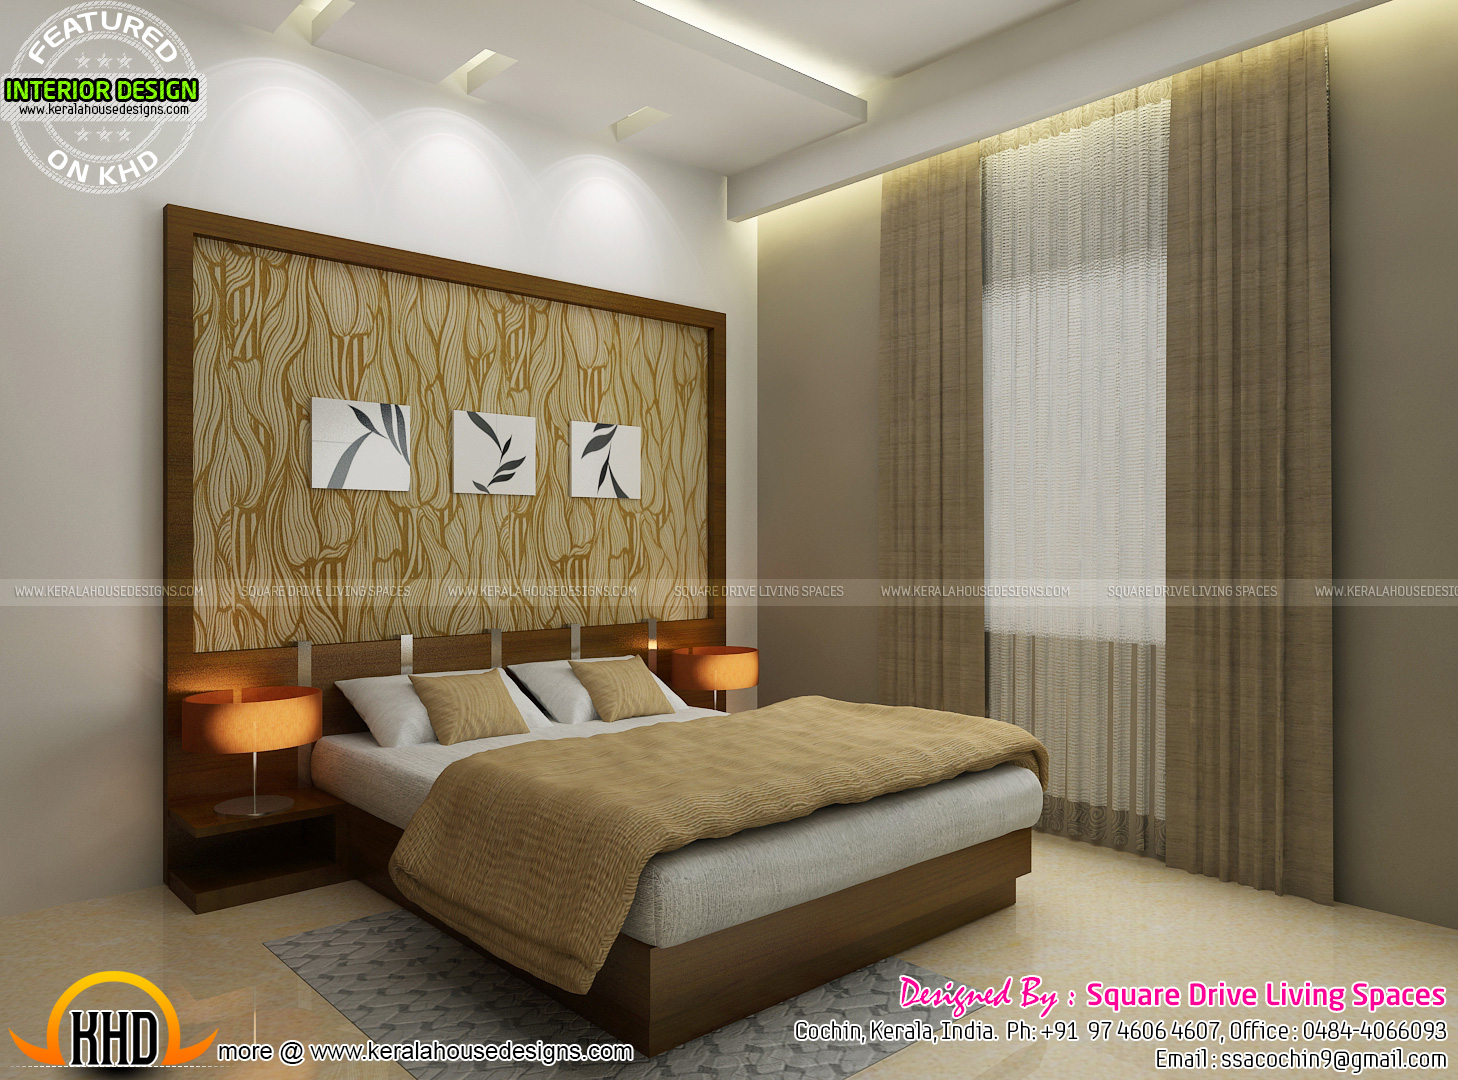 Interior designs of master bedroom living kitchen and for One bedroom house interior design